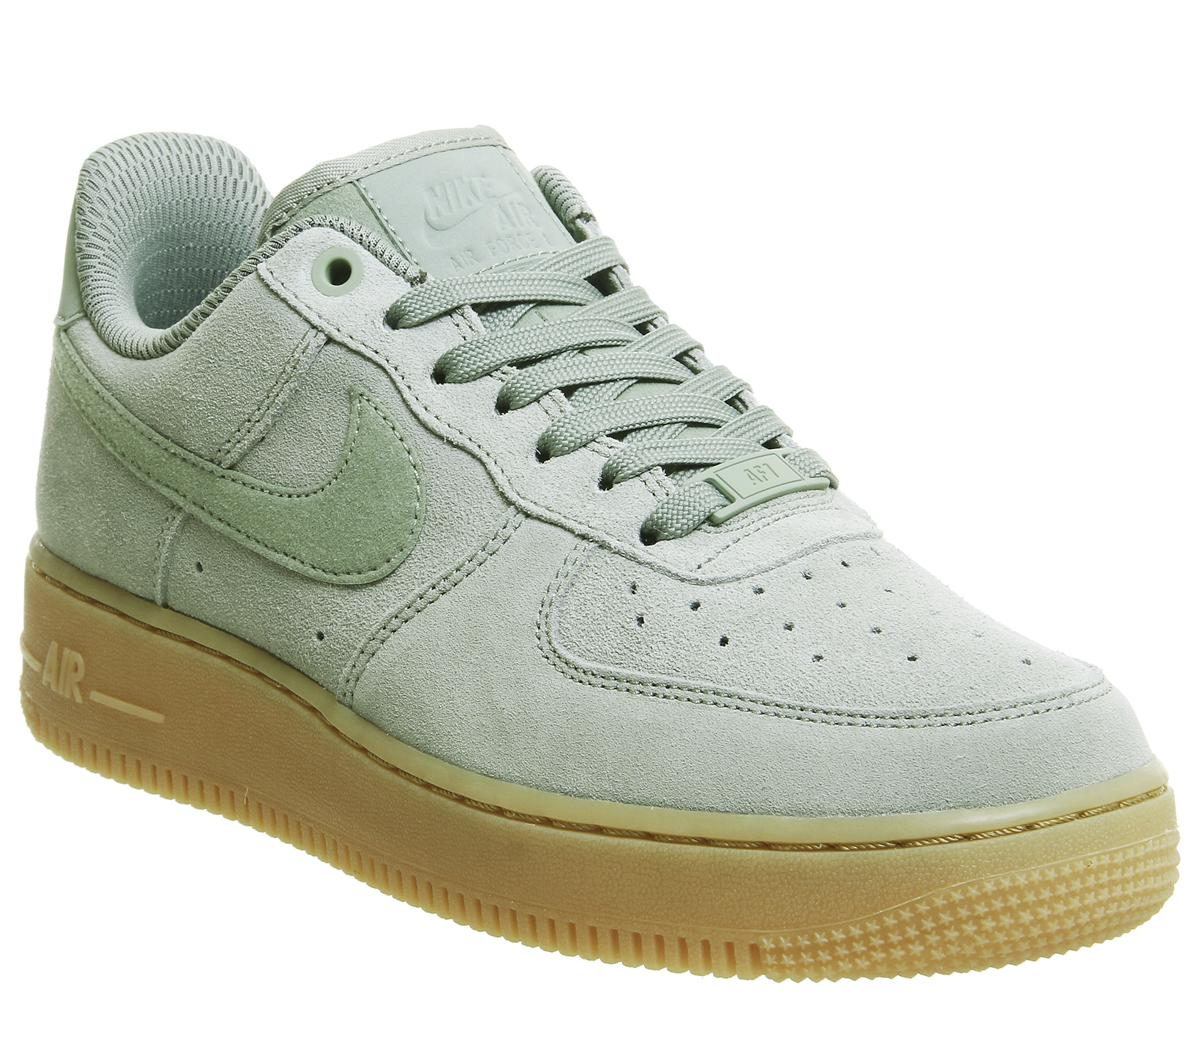 green and gum air force 1